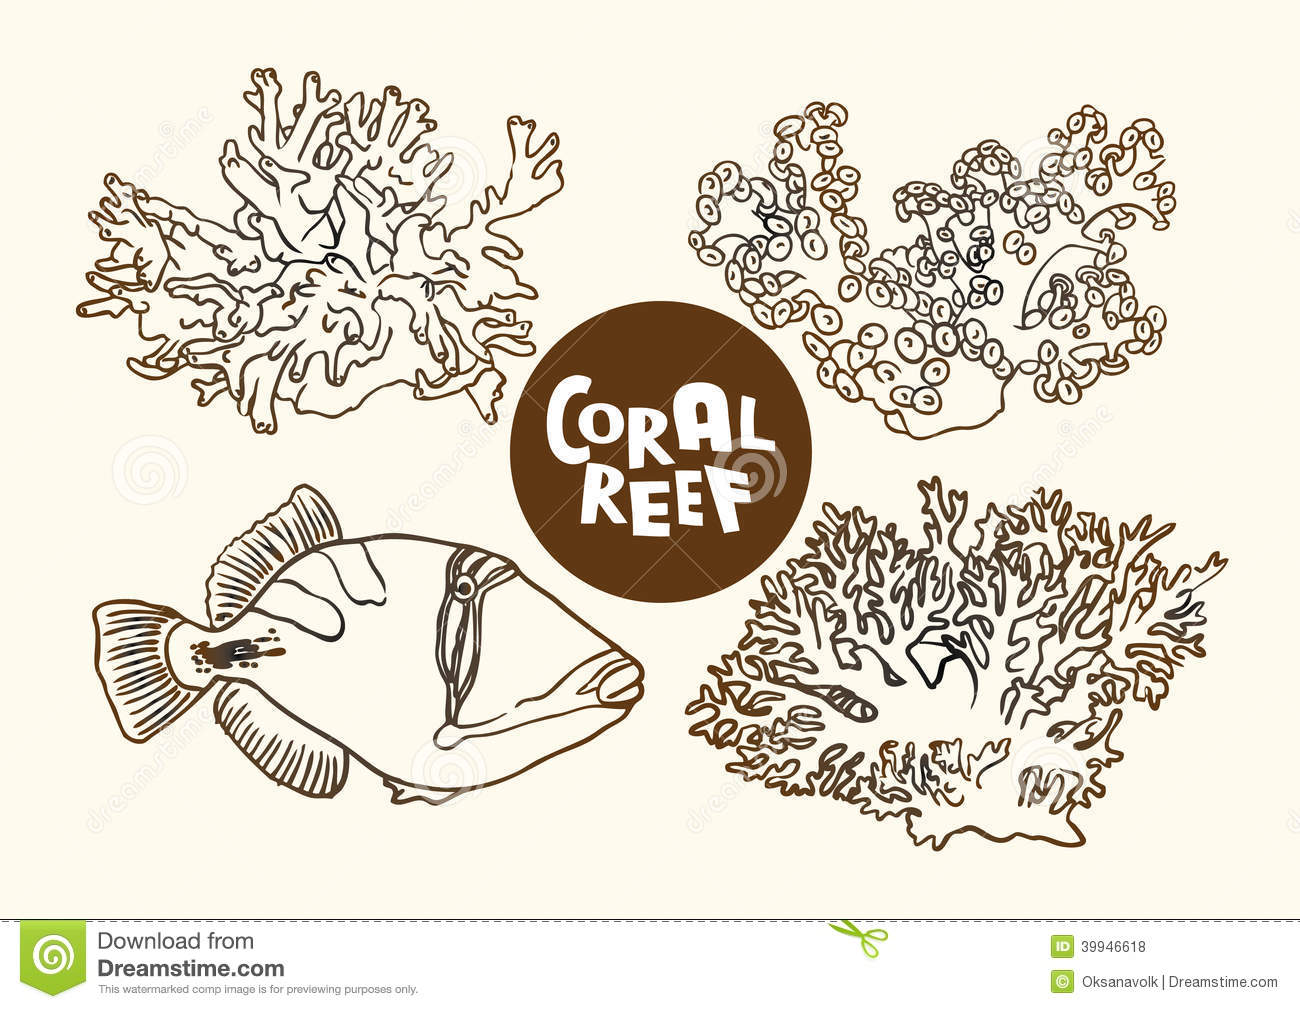 Coral reef fish and corals vector contour drawing